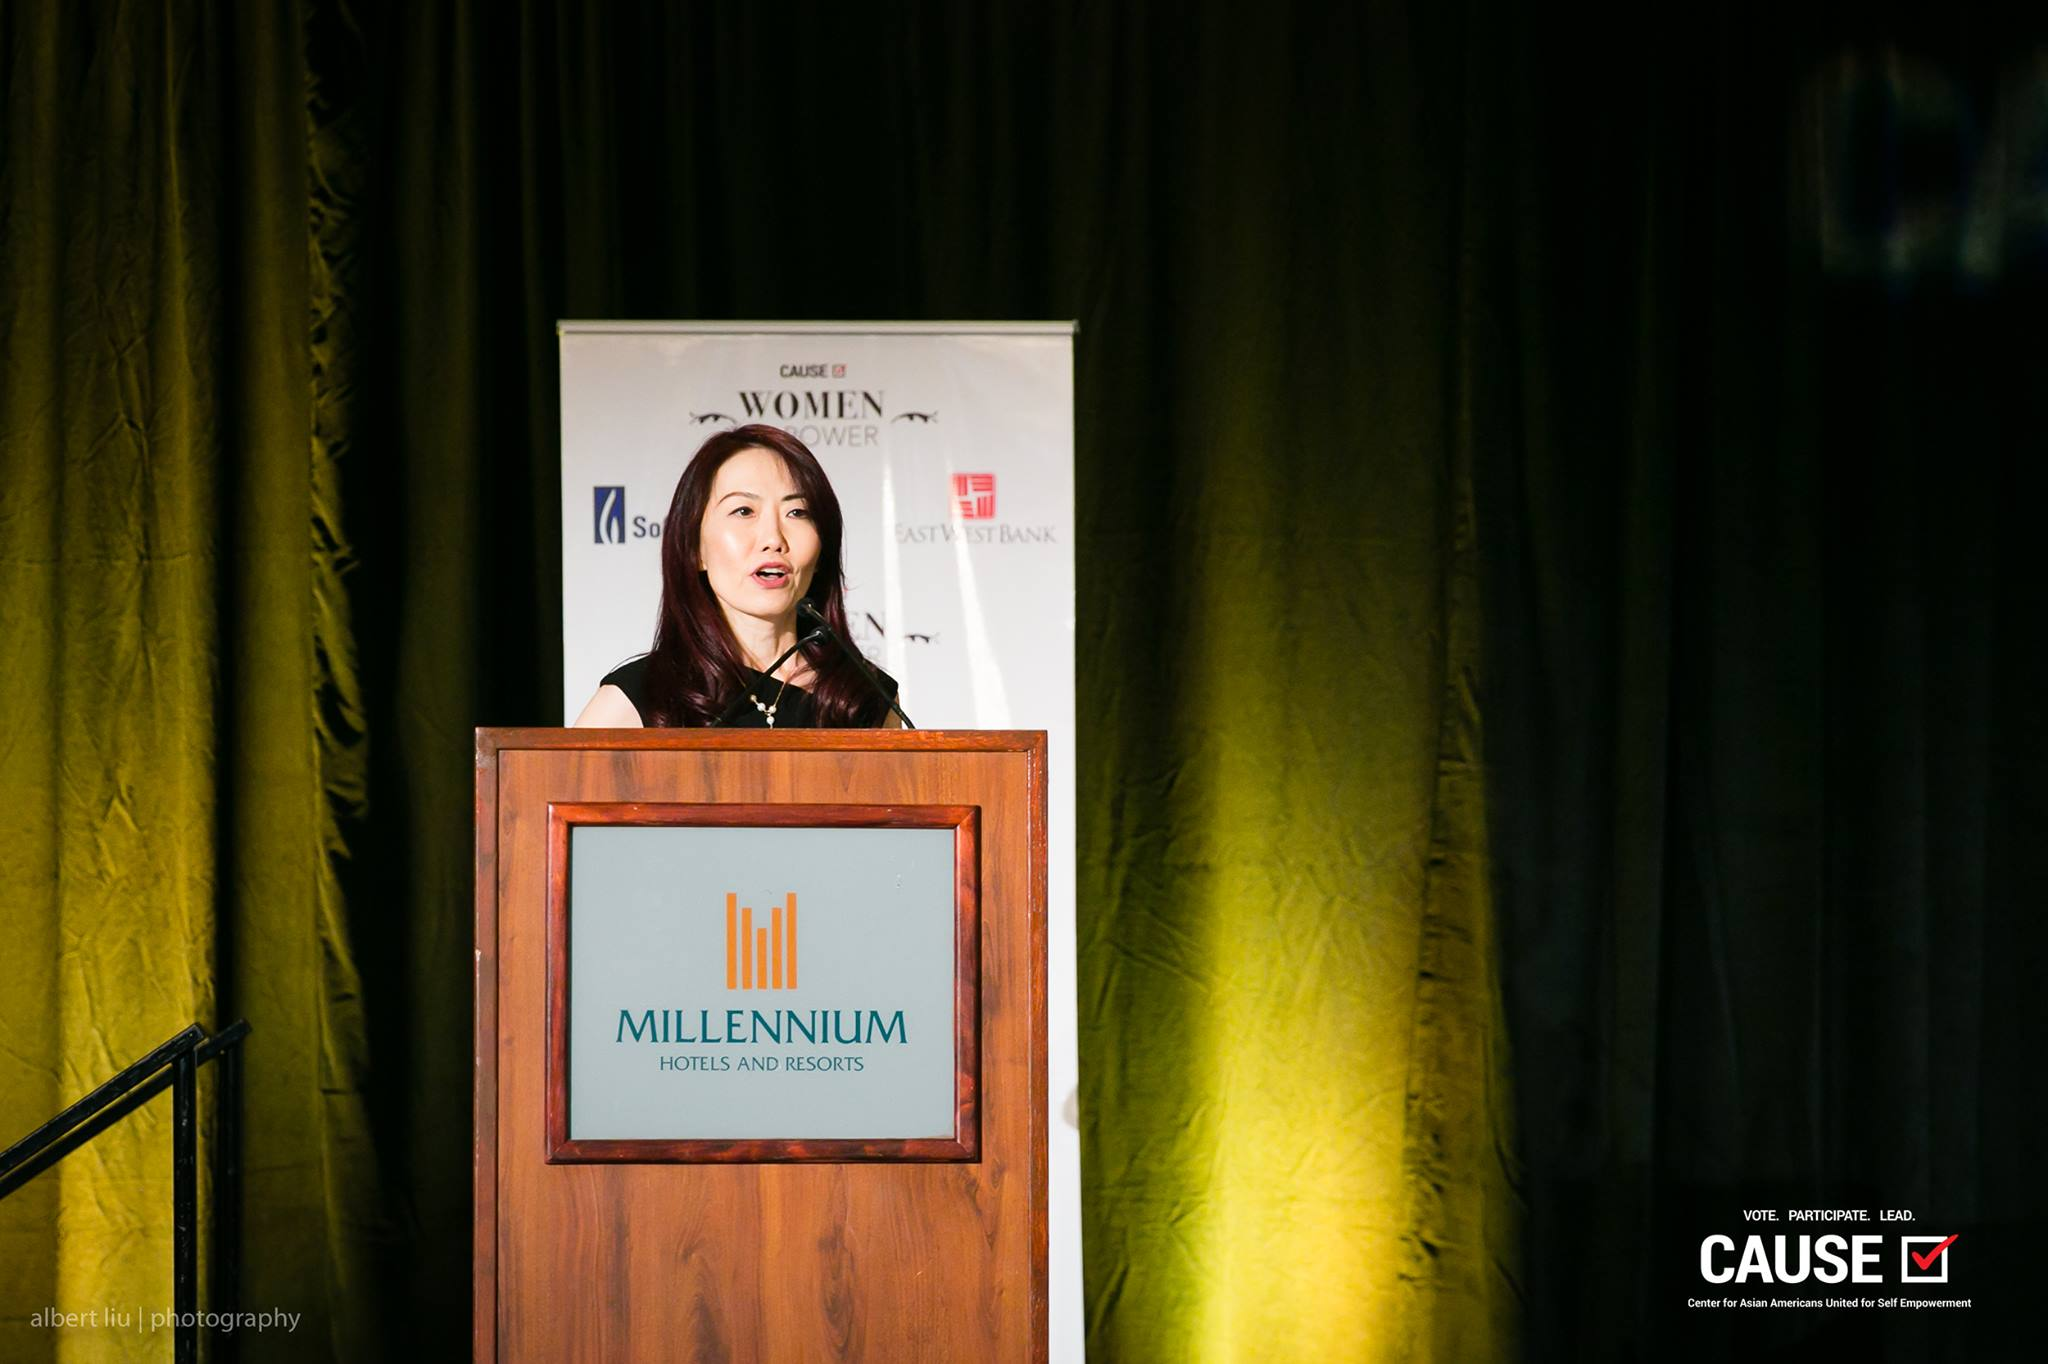 Emily Wang speaking at the 2017 CAUSE Women in Power Leadership Conference